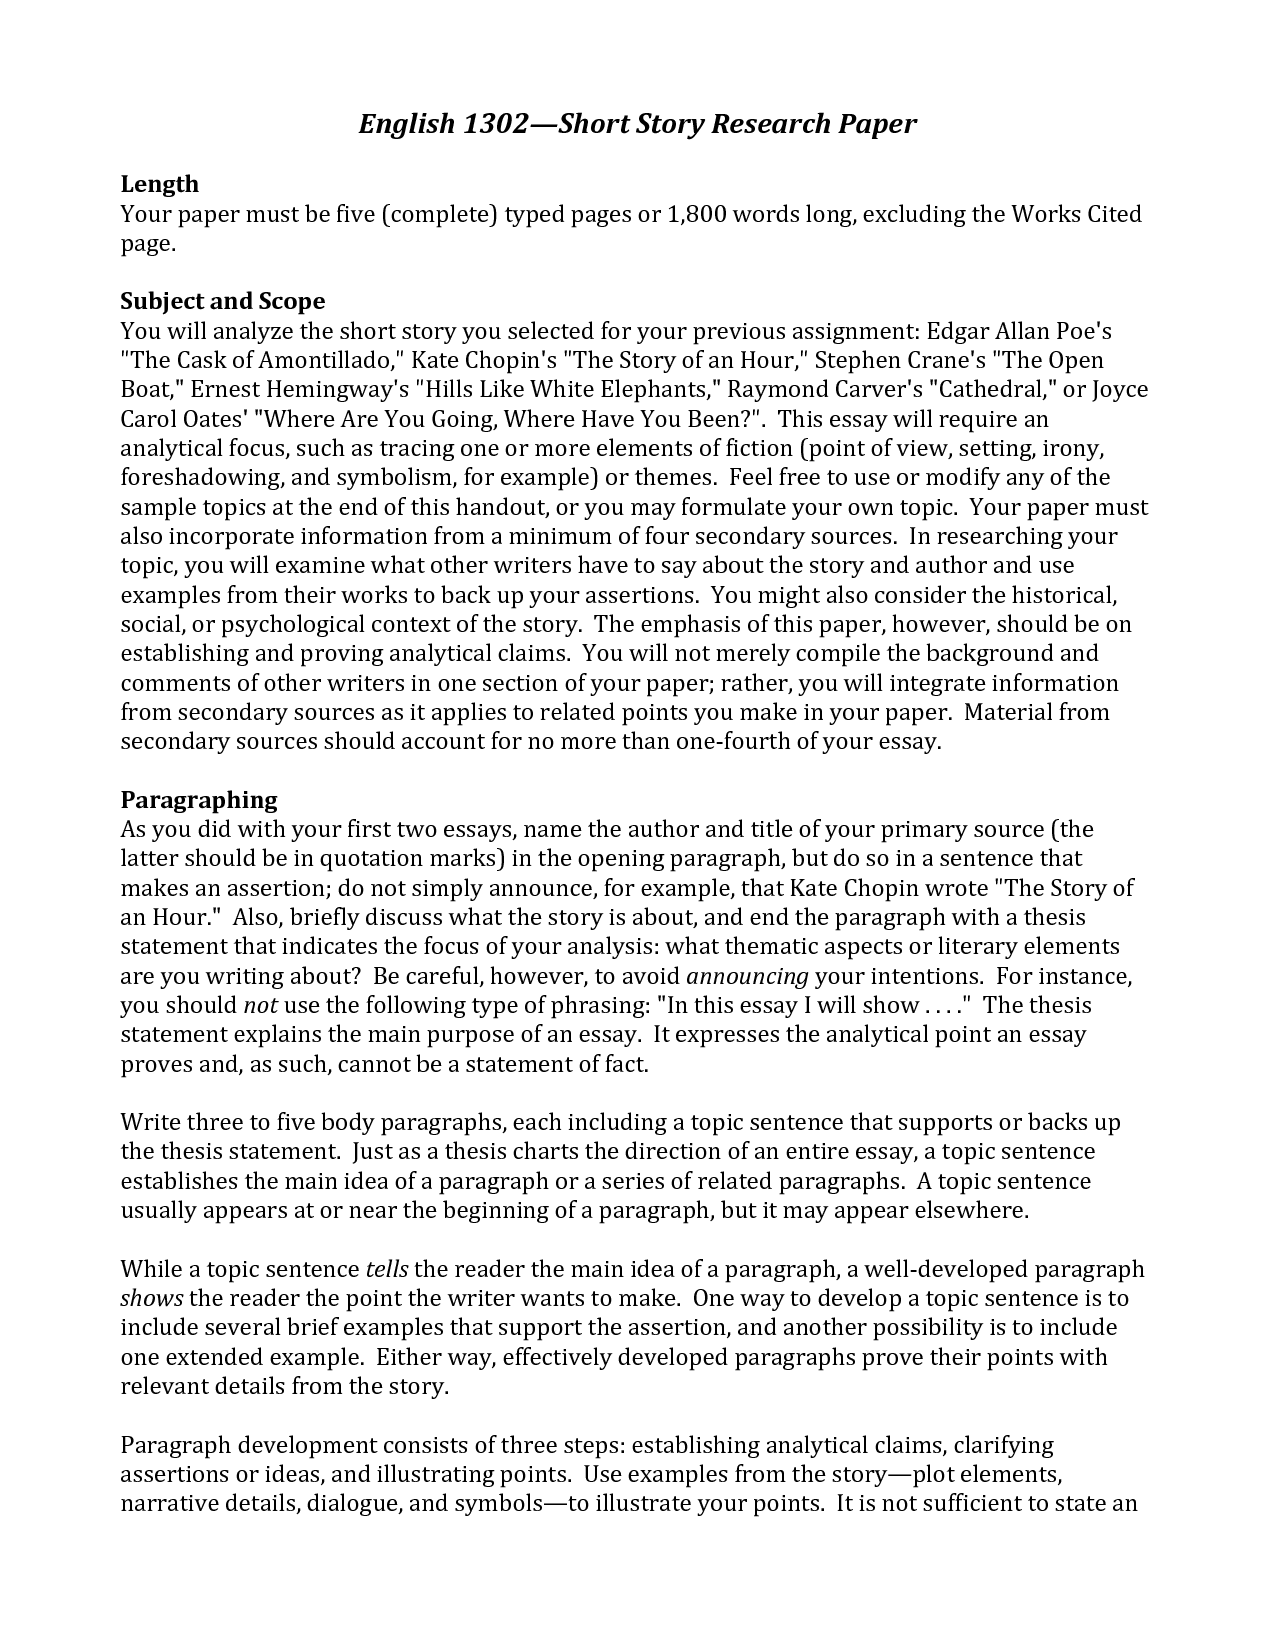 research paper for english An abstract of a scientific research paper will contain elements not found in an abstract of a literature article, and vice versa however, all abstracts share several mandatory components, and there are also some optional parts that you can decide to include or not when preparing to draft your abstract, keep the following key process elements.